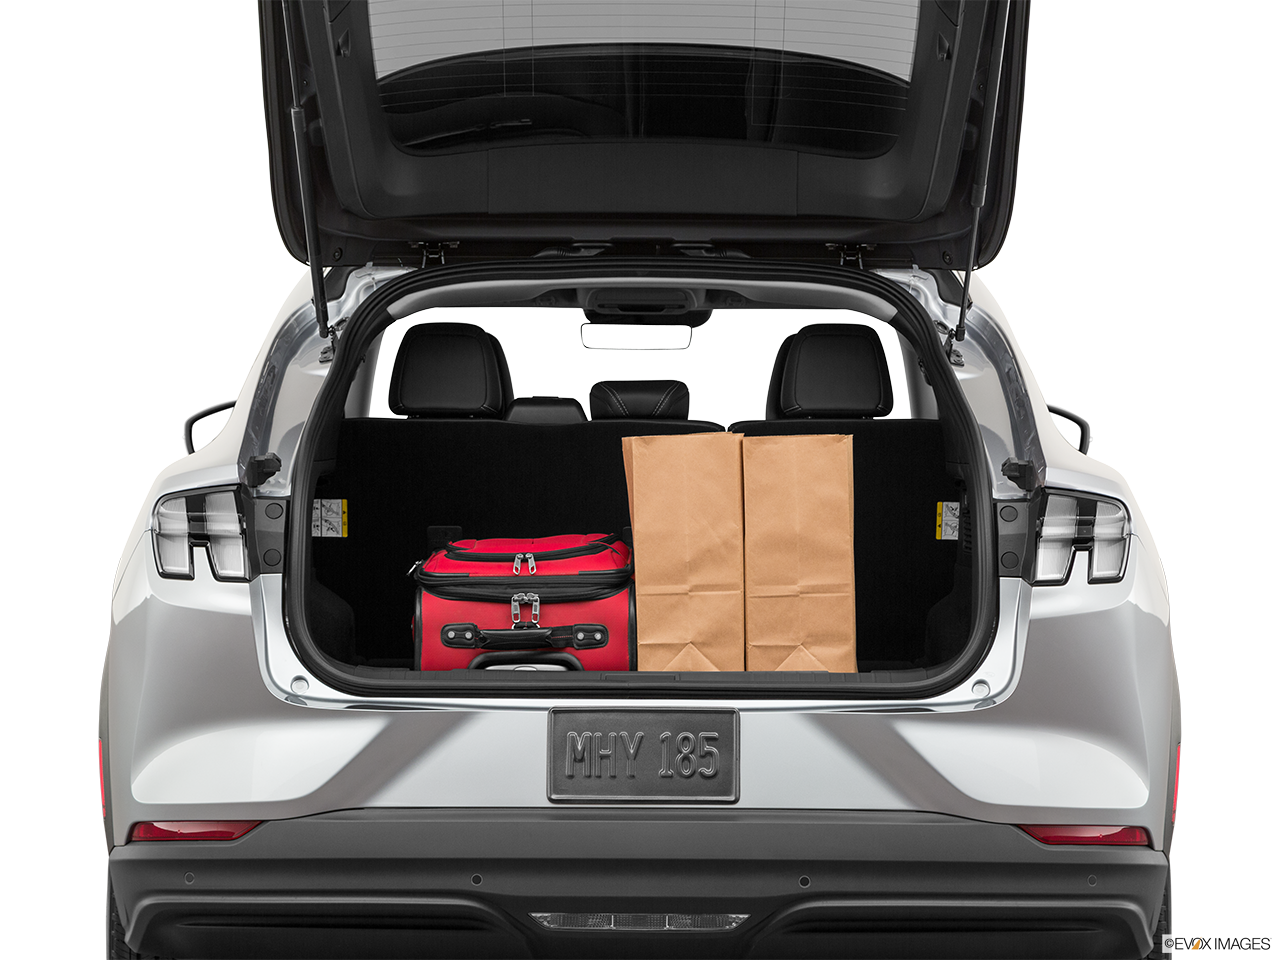 Trunk view of the Ford Mustang Mach E